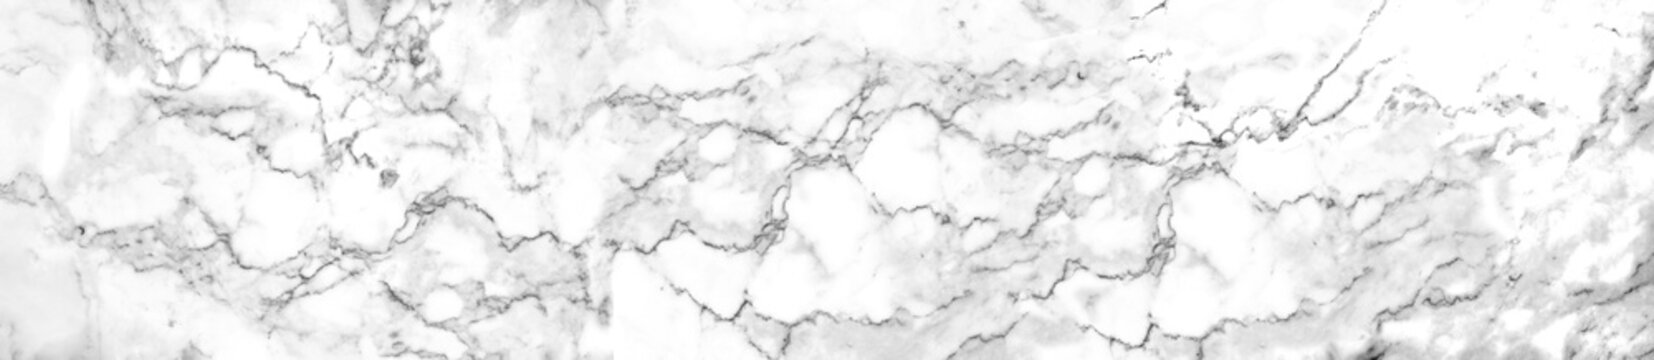 White marble texture background with high resolution, top view of natural tiles stone floor in luxury seamless glitter pattern for interior and exterior decoration.